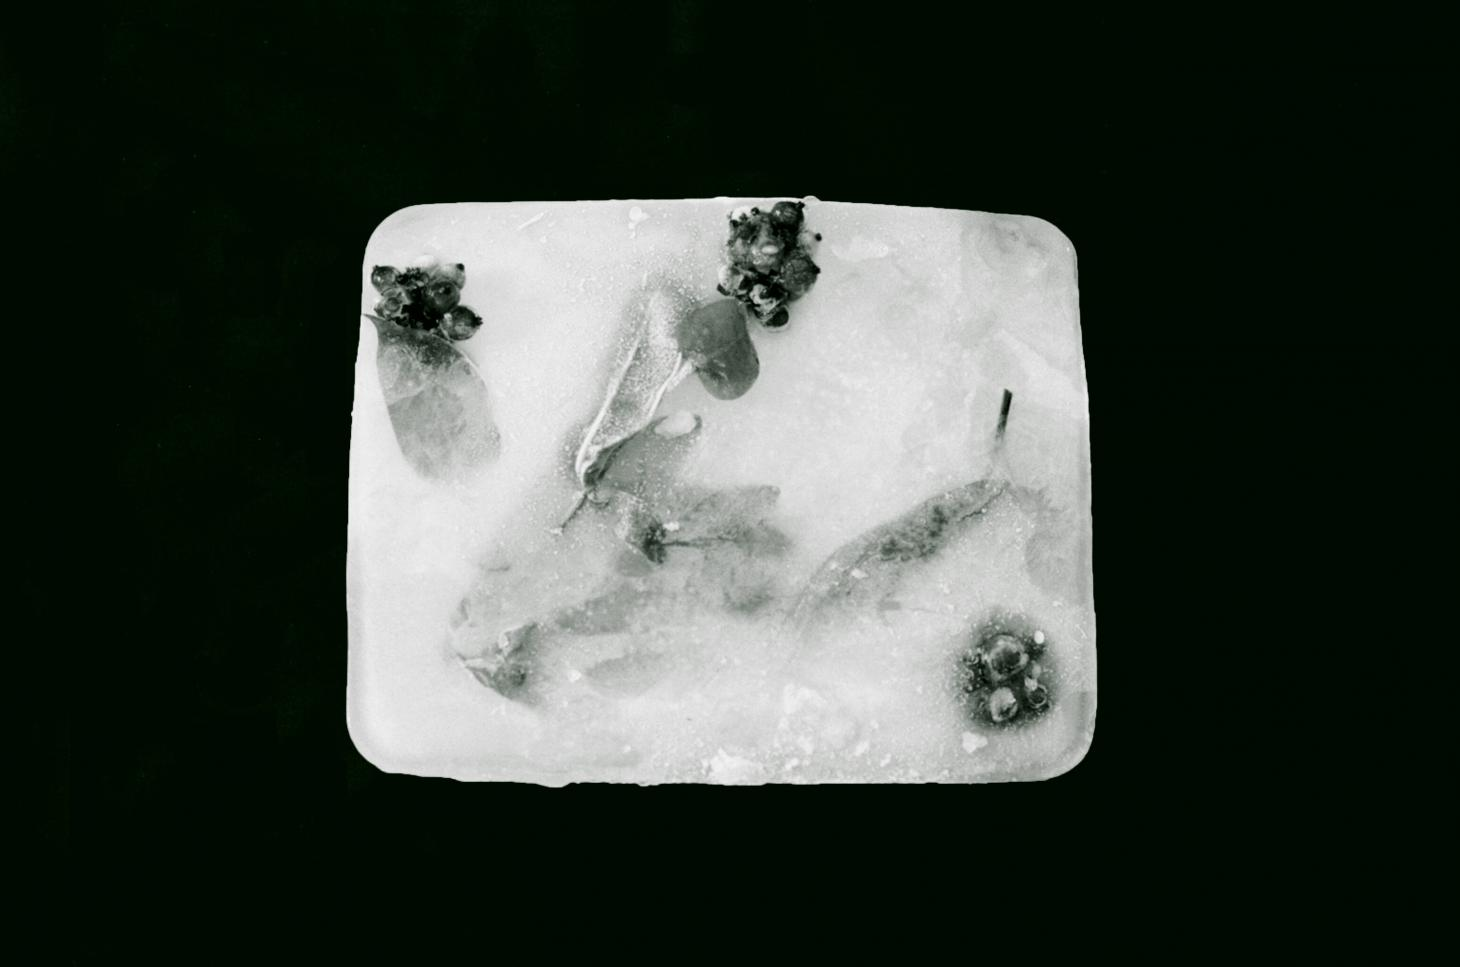 seated queen ice block with flowers in it against black background